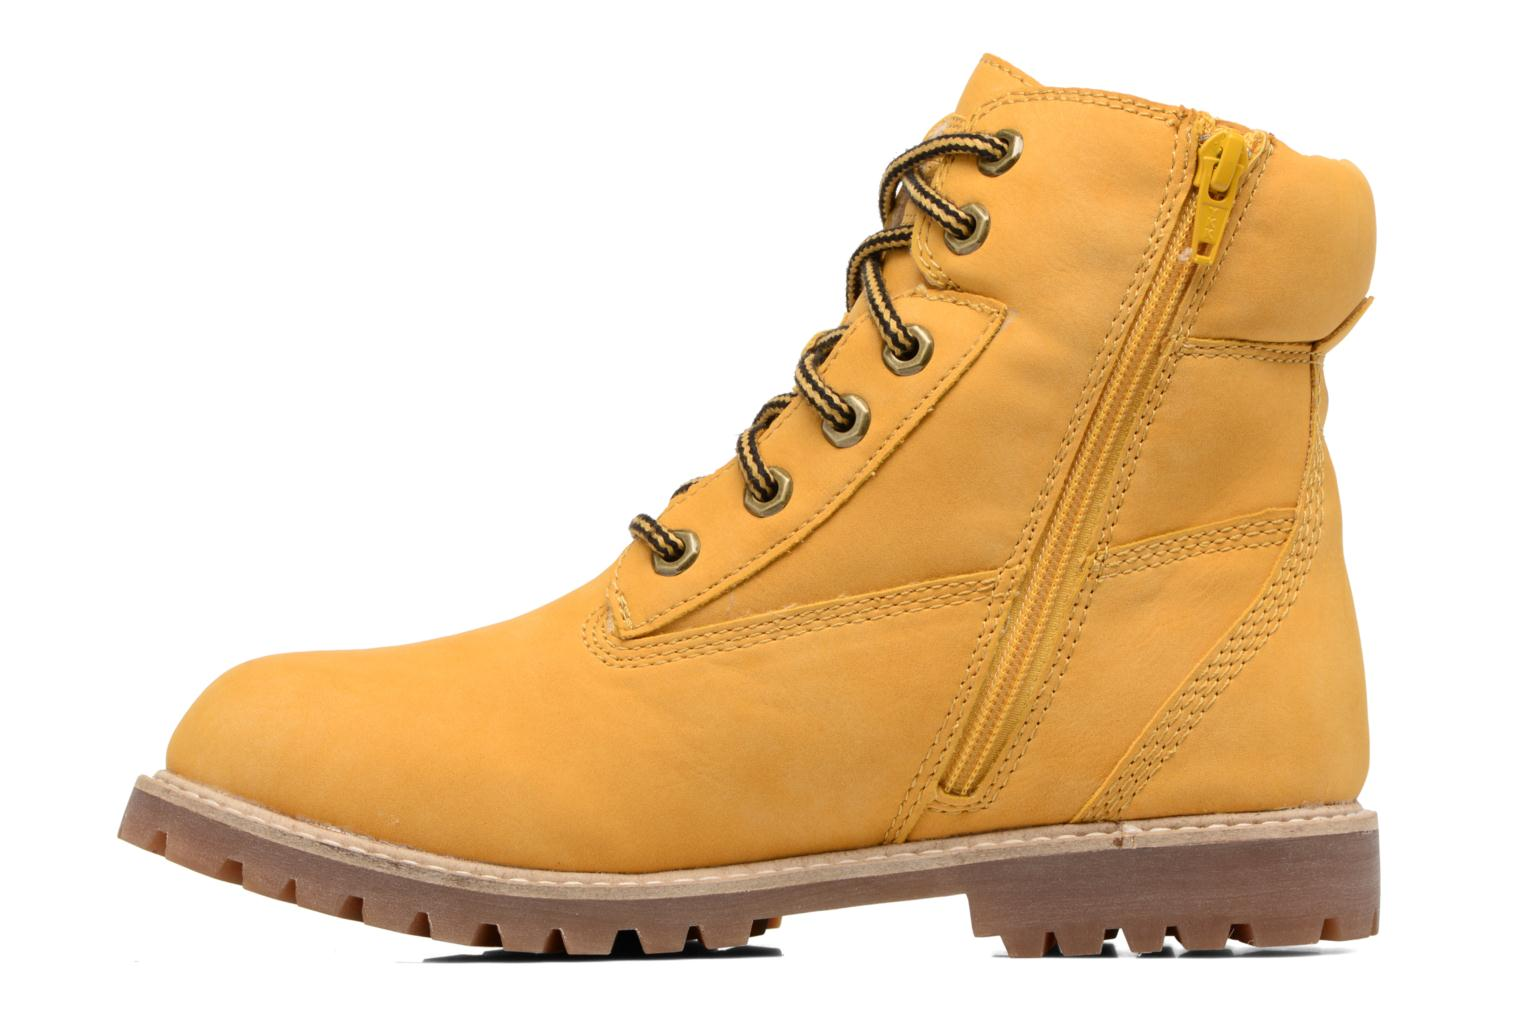 Landy LU Bootie Amber Yellow